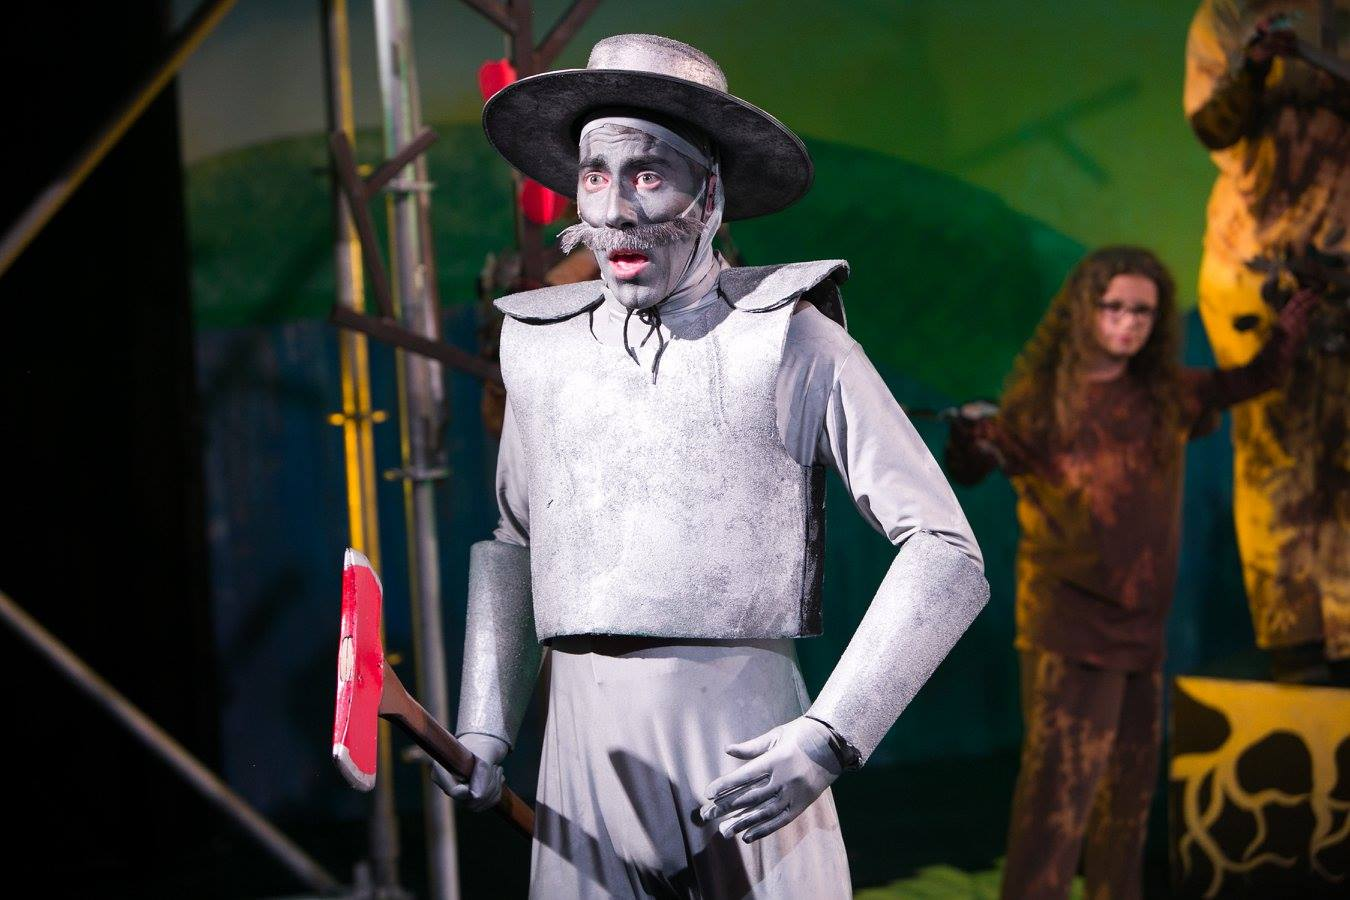 Tin Man with Trees in background from The Wizard of Oz costume design by Katharine Tarkulich